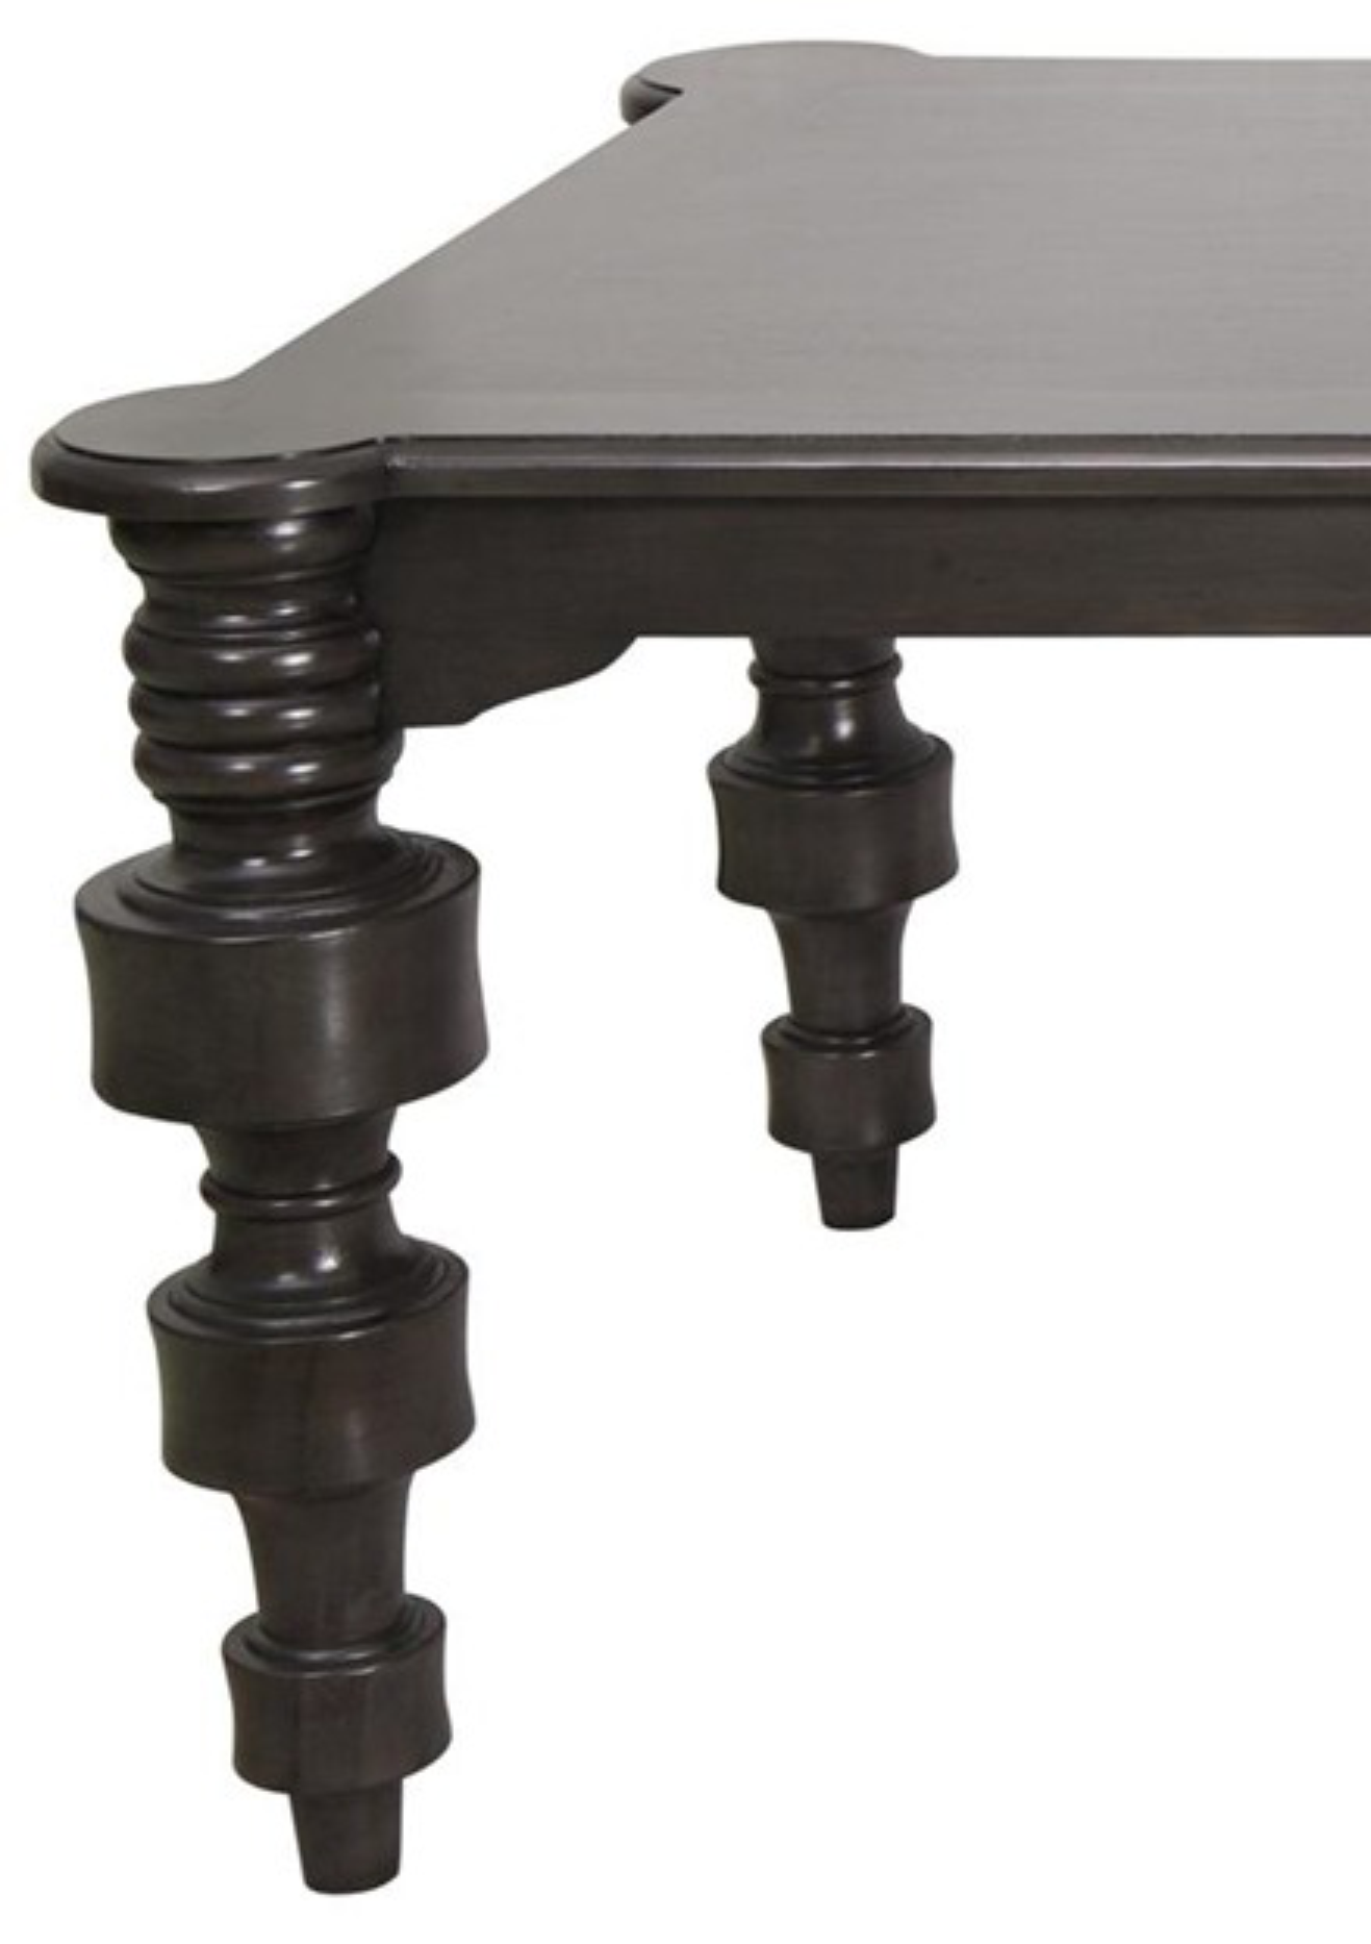 Karkoff dining table